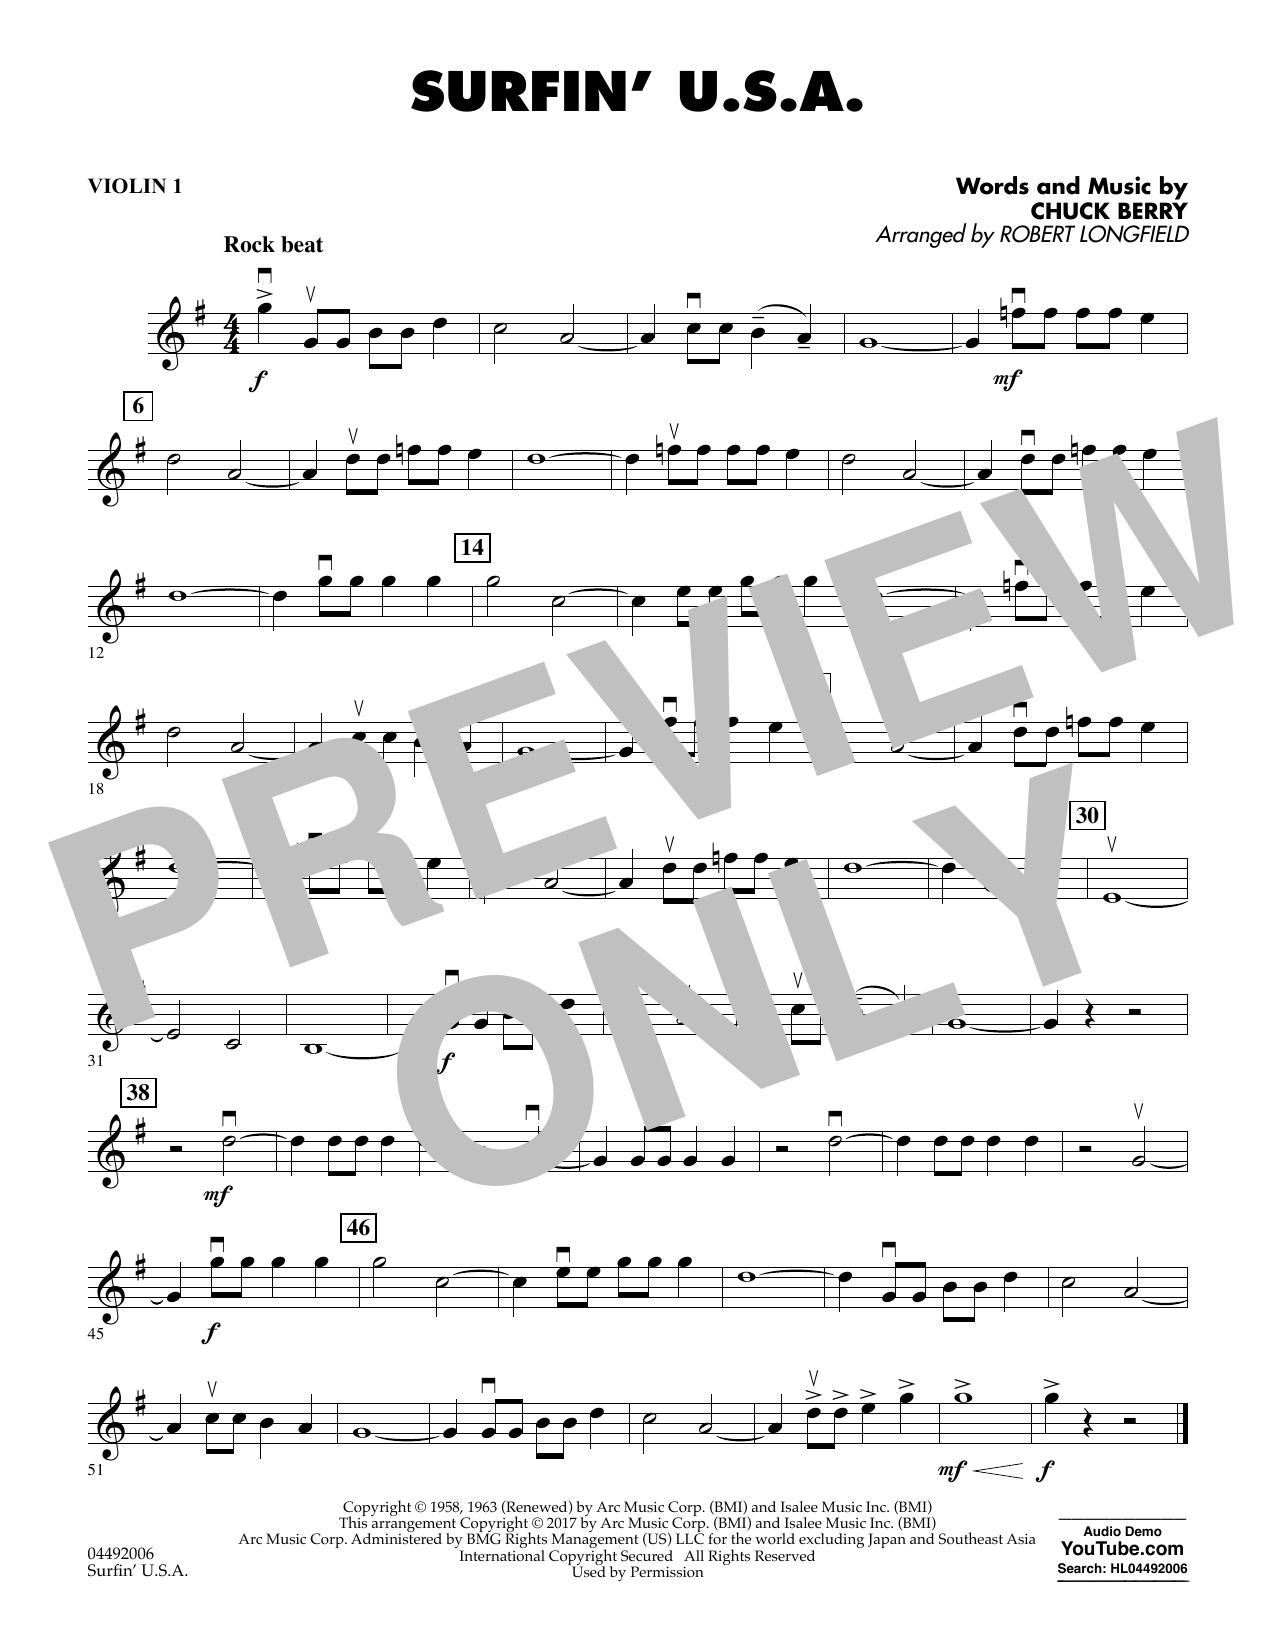 Sheet music digital files to print licensed chuck berry digital surfin usa violin 1 hexwebz Images